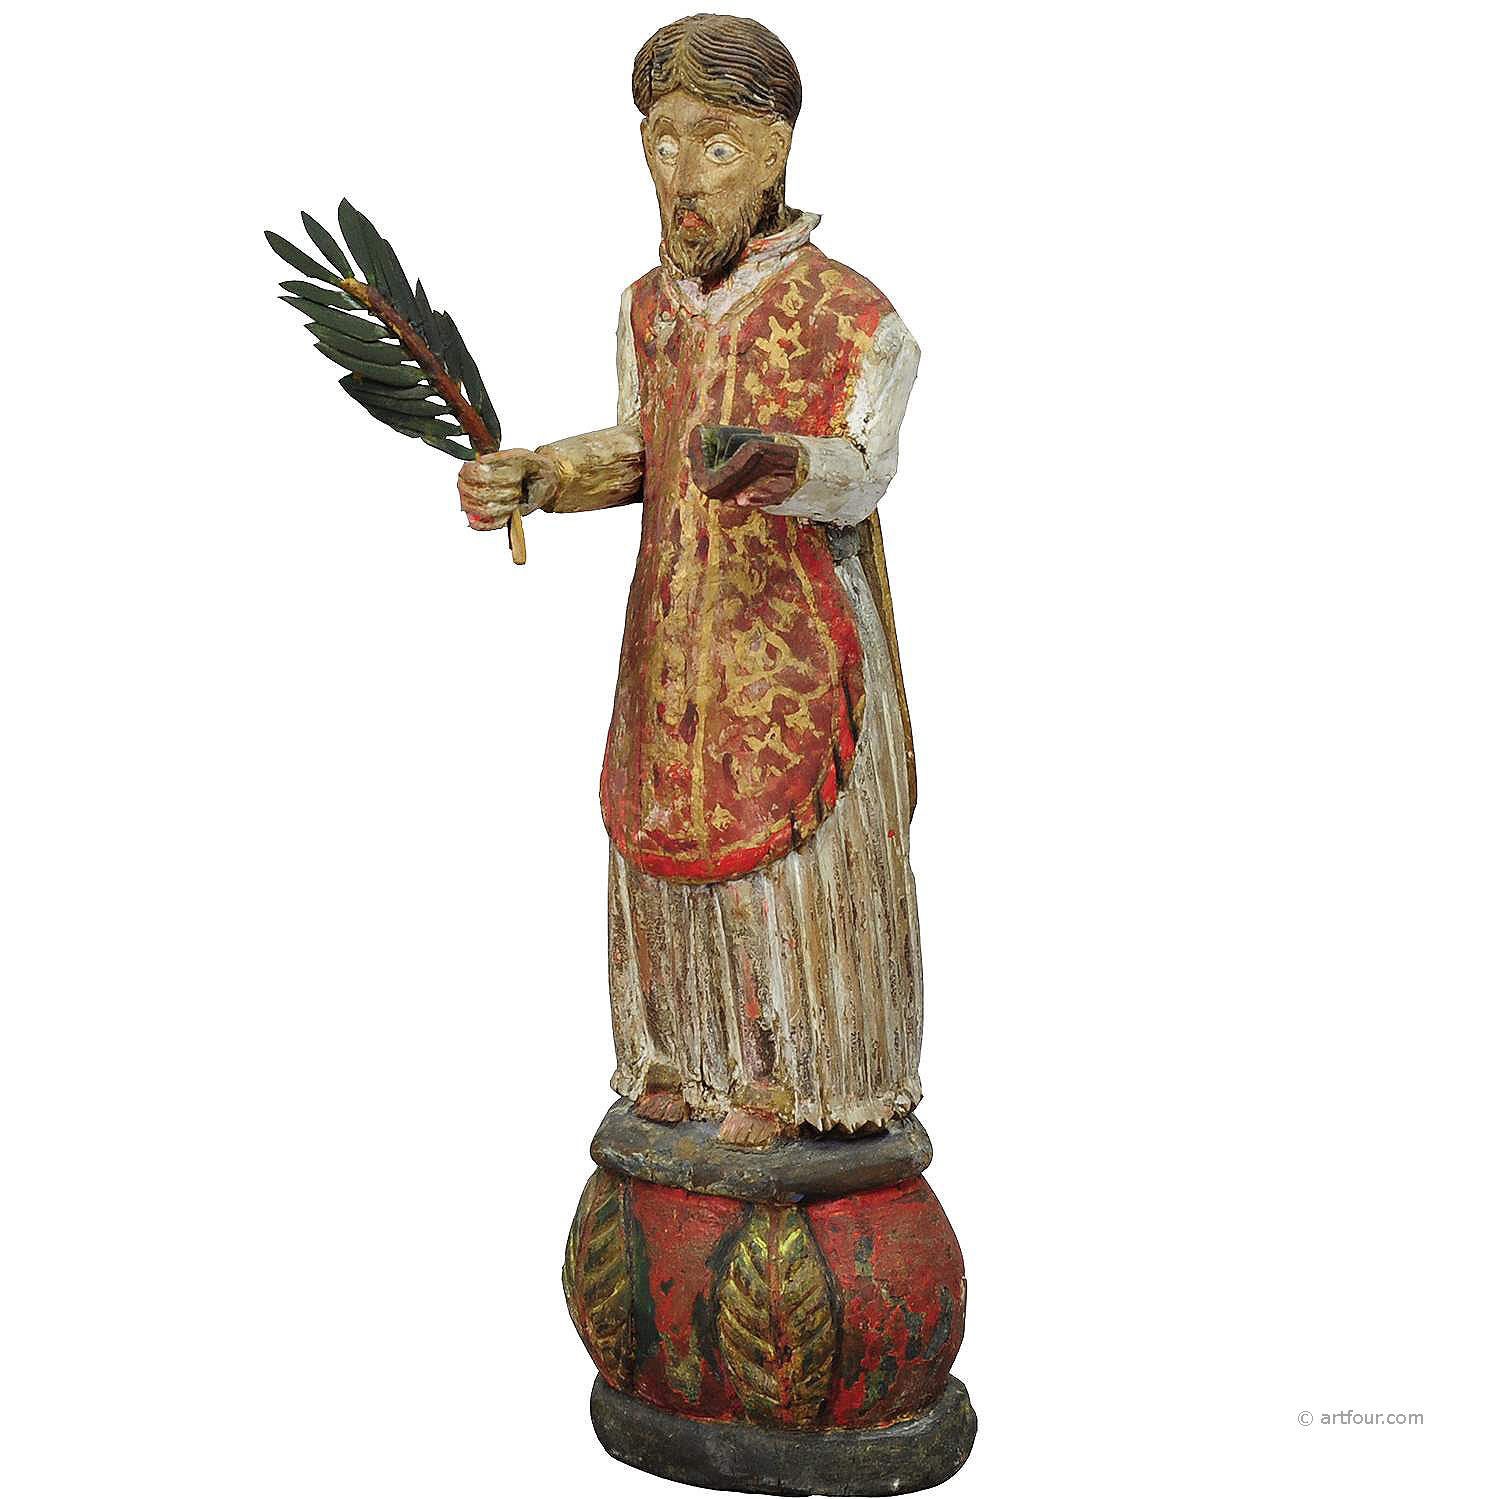 wooden carved sculpture of a saint ca. 1850